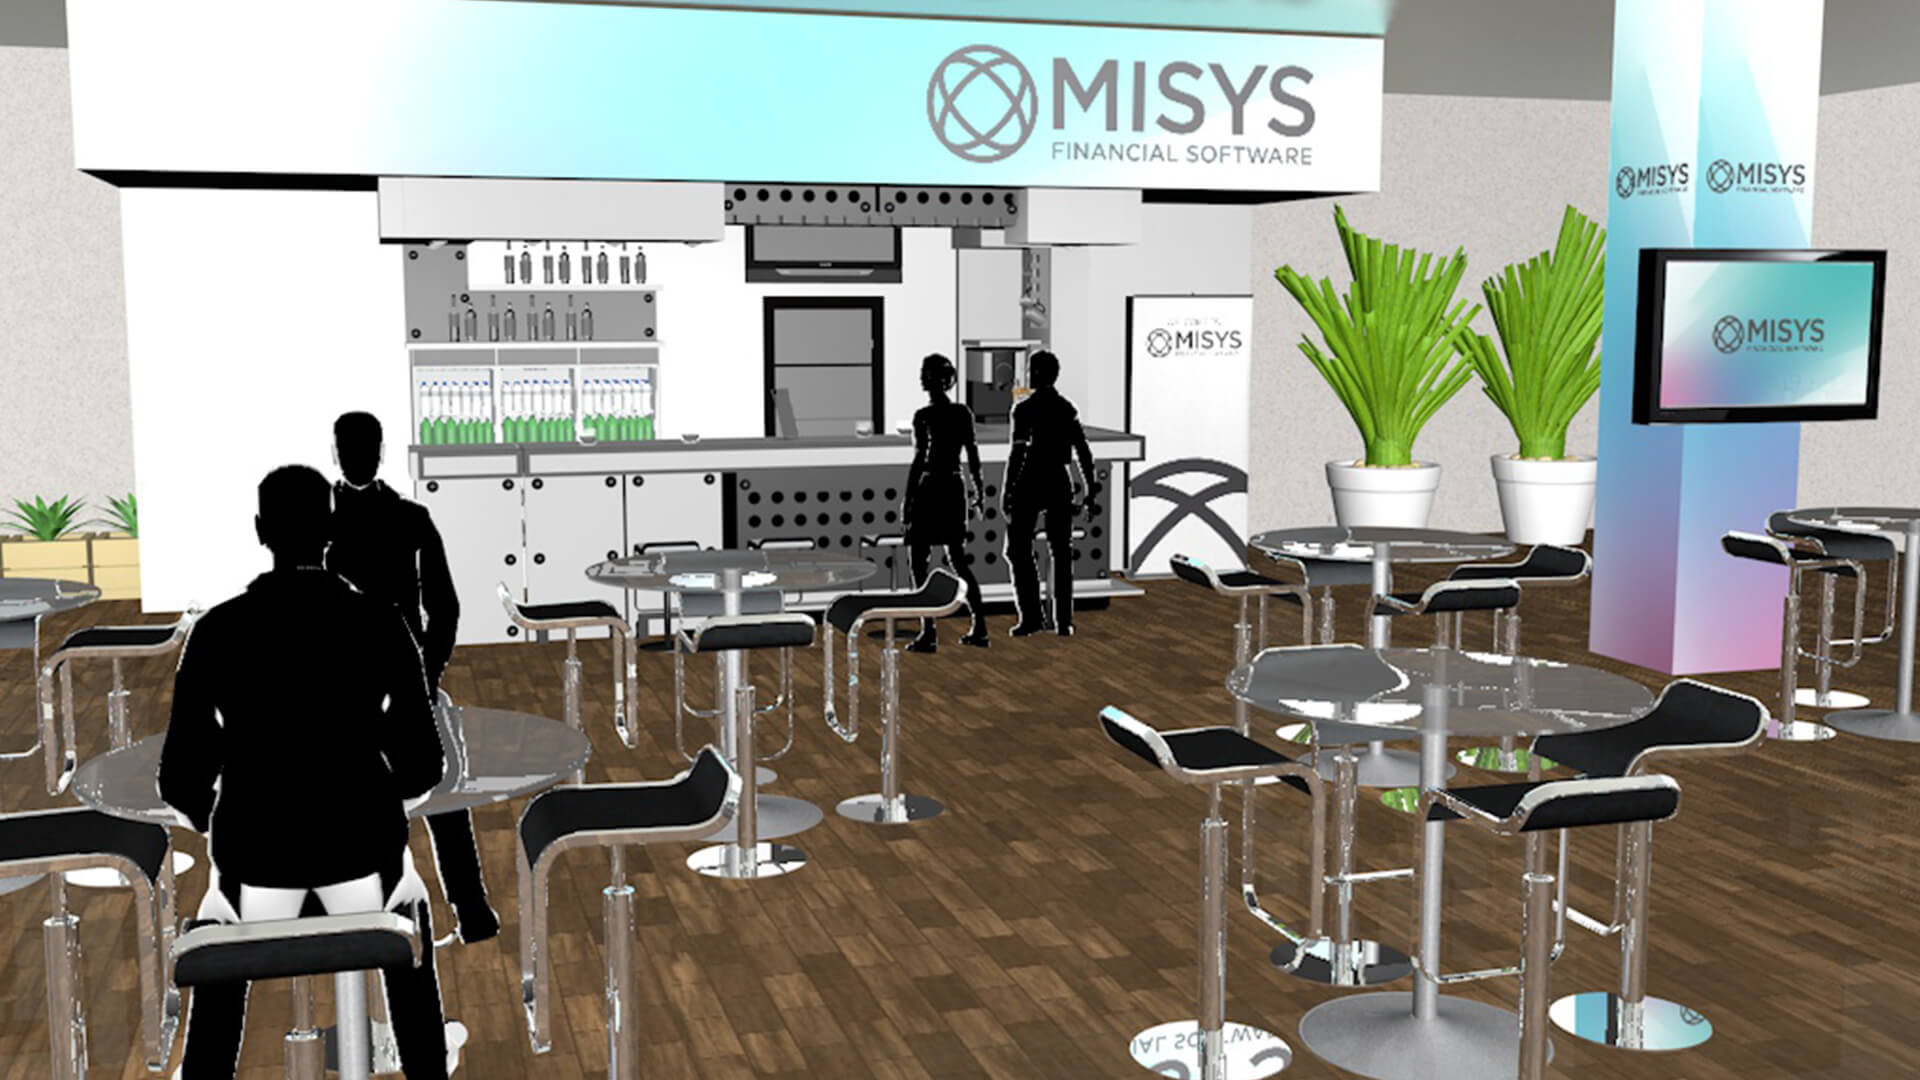 Misys Event Theme and Set Design